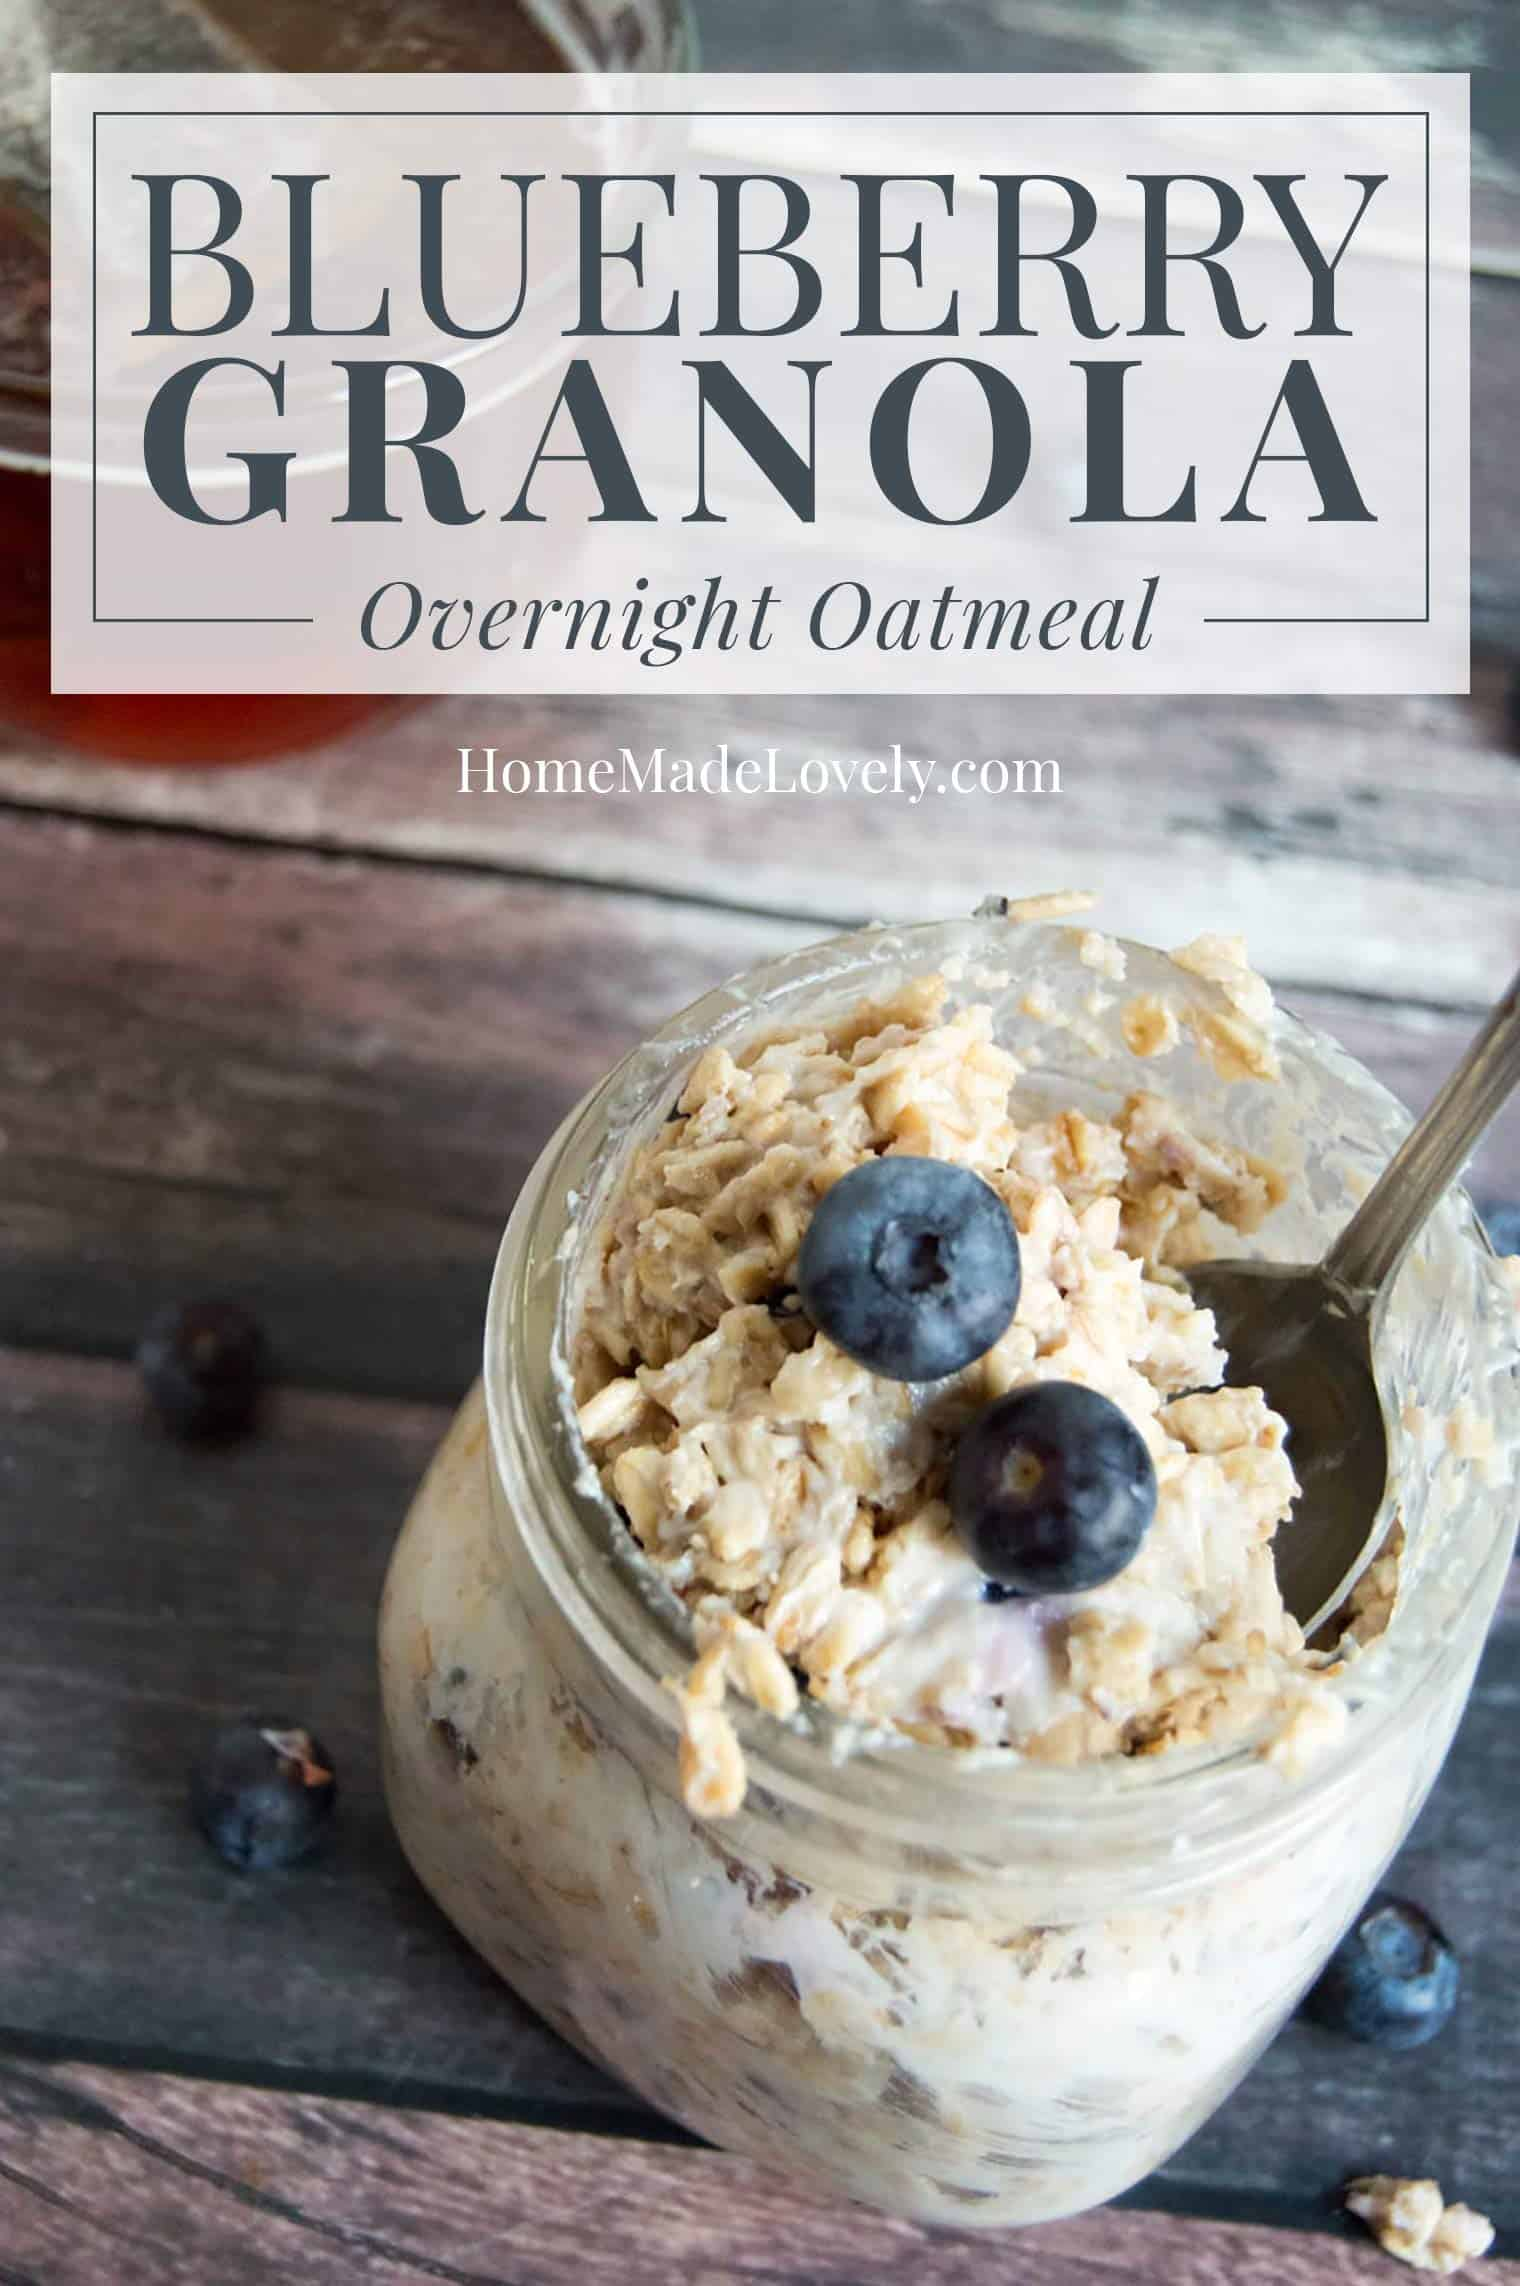 Blueberry Granola Overnight Oatmeal in mason jar on wood table